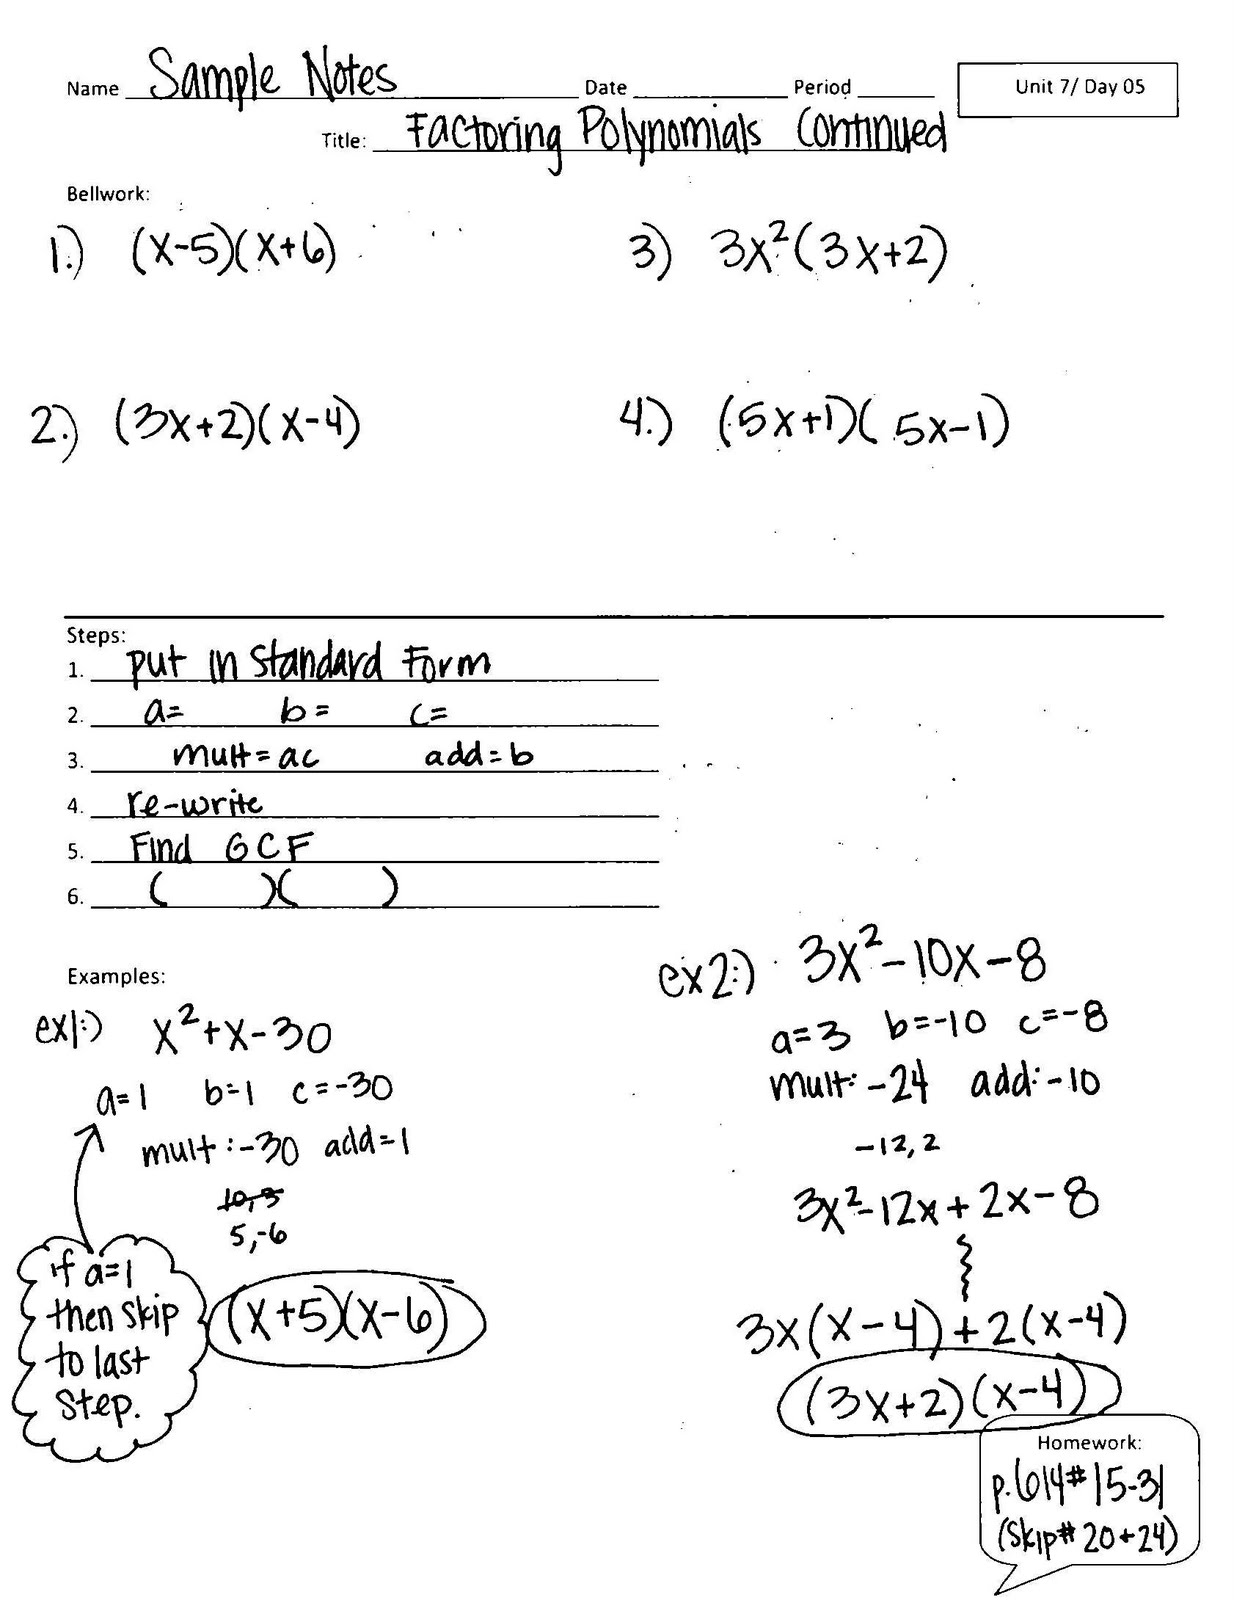 Algebra 1 Unit 7 Day 5 Factoring Polynomials Continued